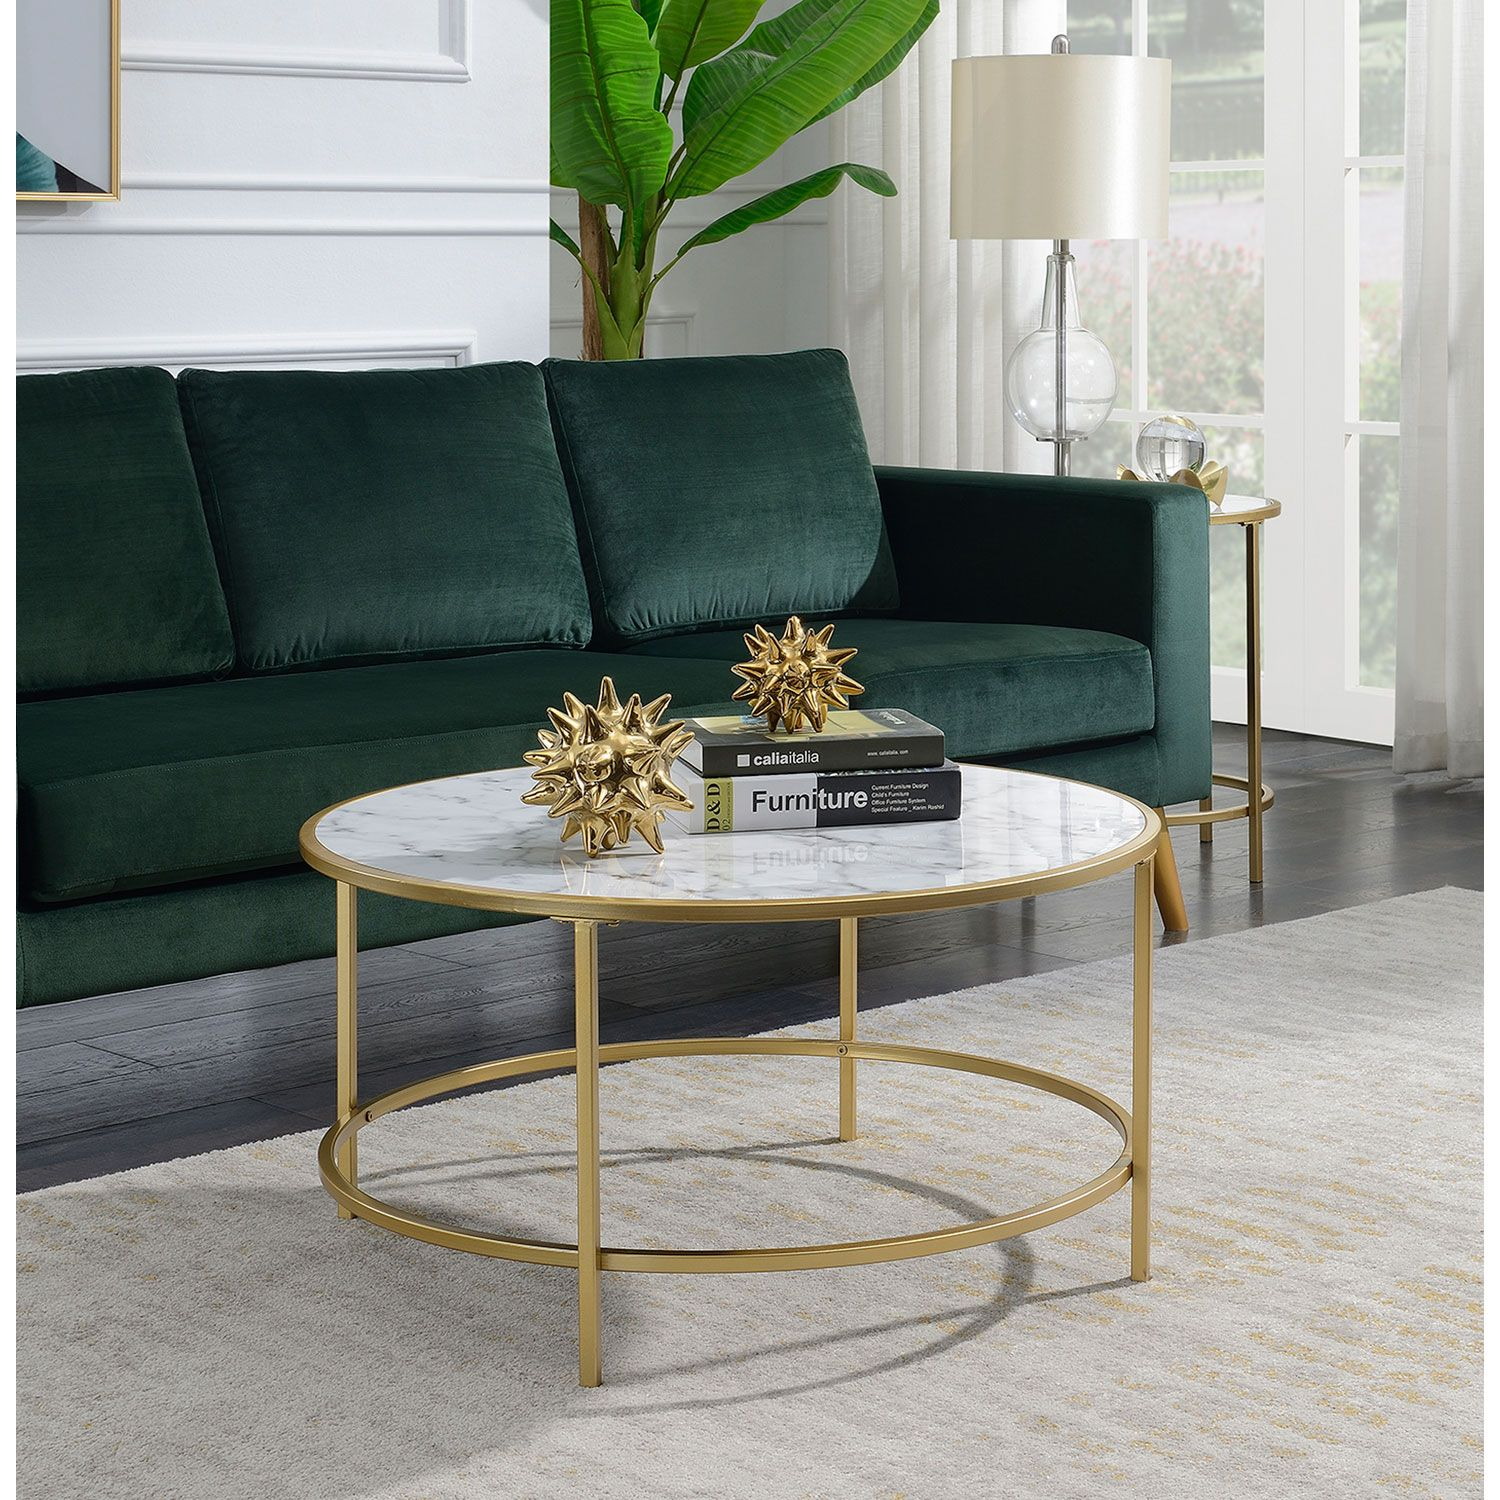 Convenience Concepts Gold Coast White Faux Marble Round Coffee Table 413477wmg Bellacor In 2021 White Round Coffee Table Marble Living Room Table Coffee Table [ 1500 x 1500 Pixel ]